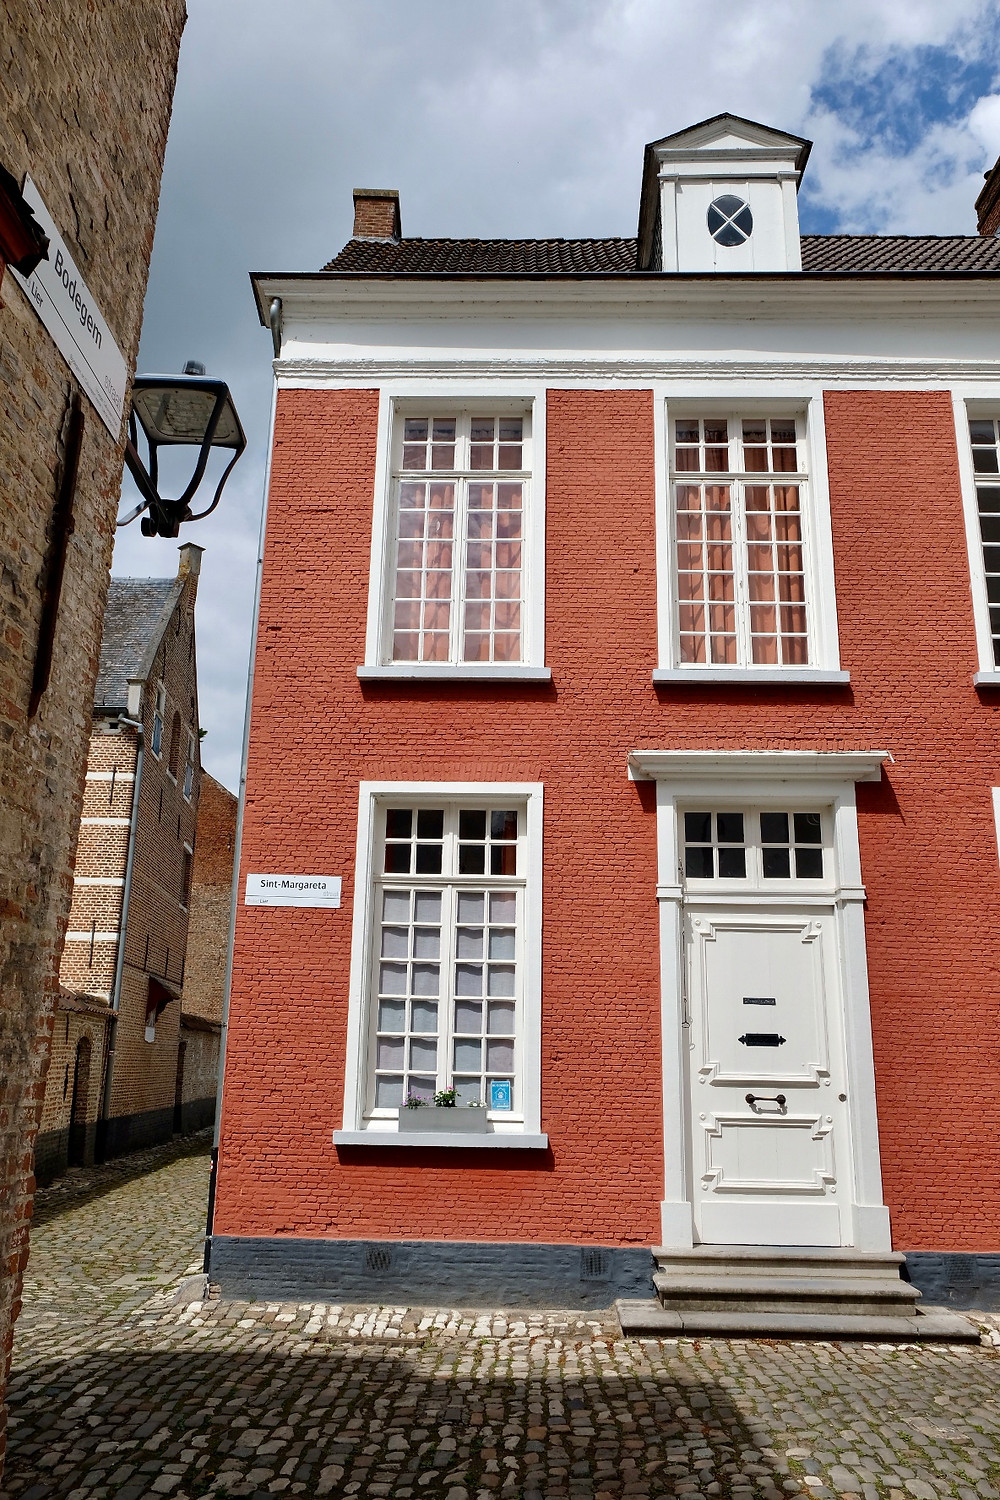 House in Beguinage Lier